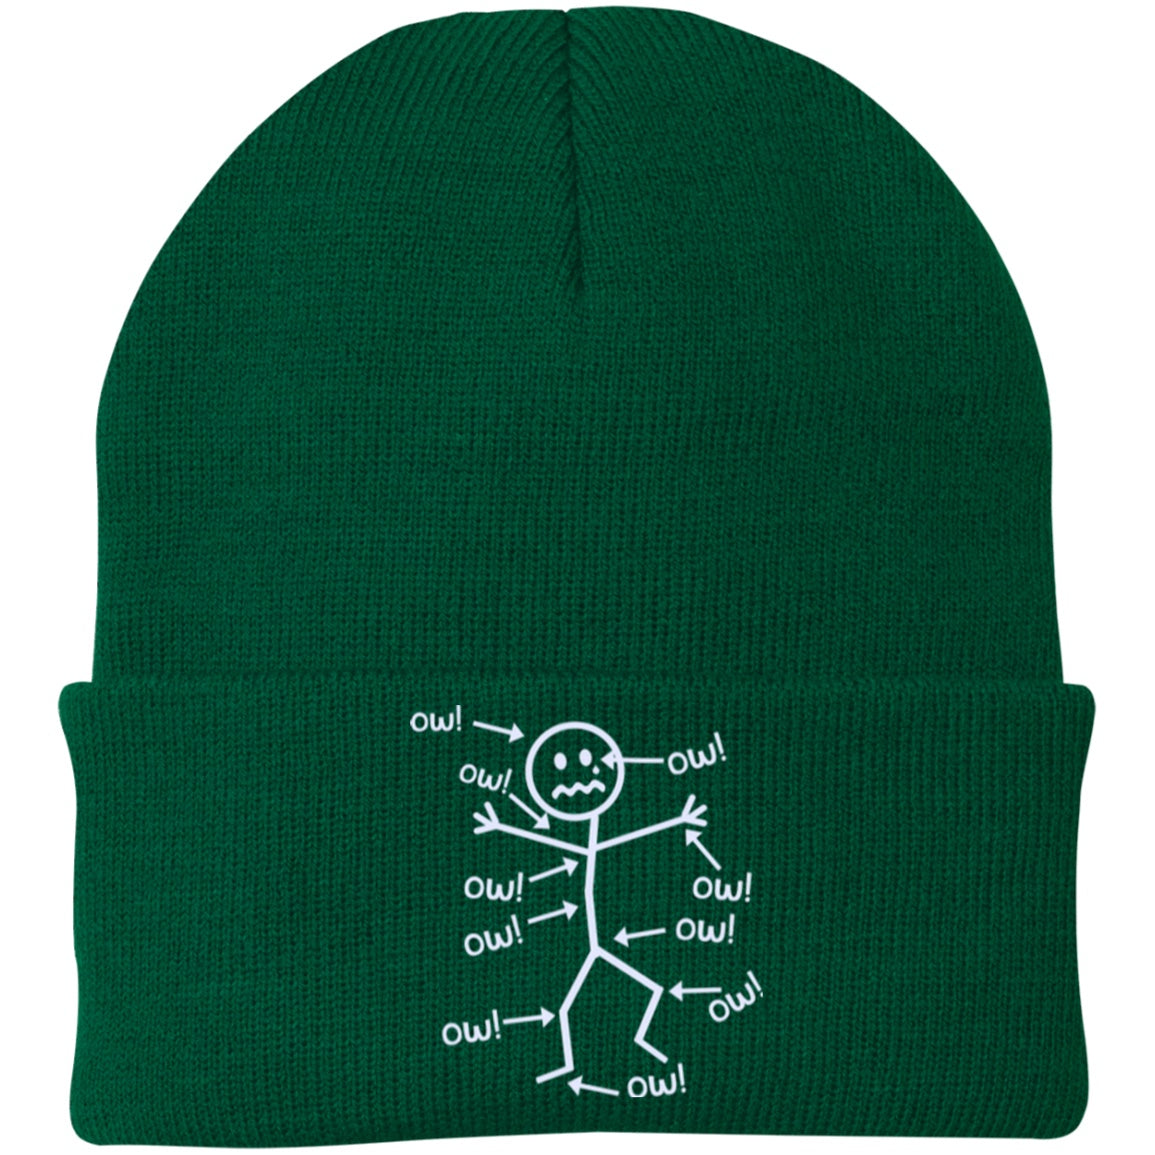 Ow Ow Ow Knit Cap - The Unchargeables